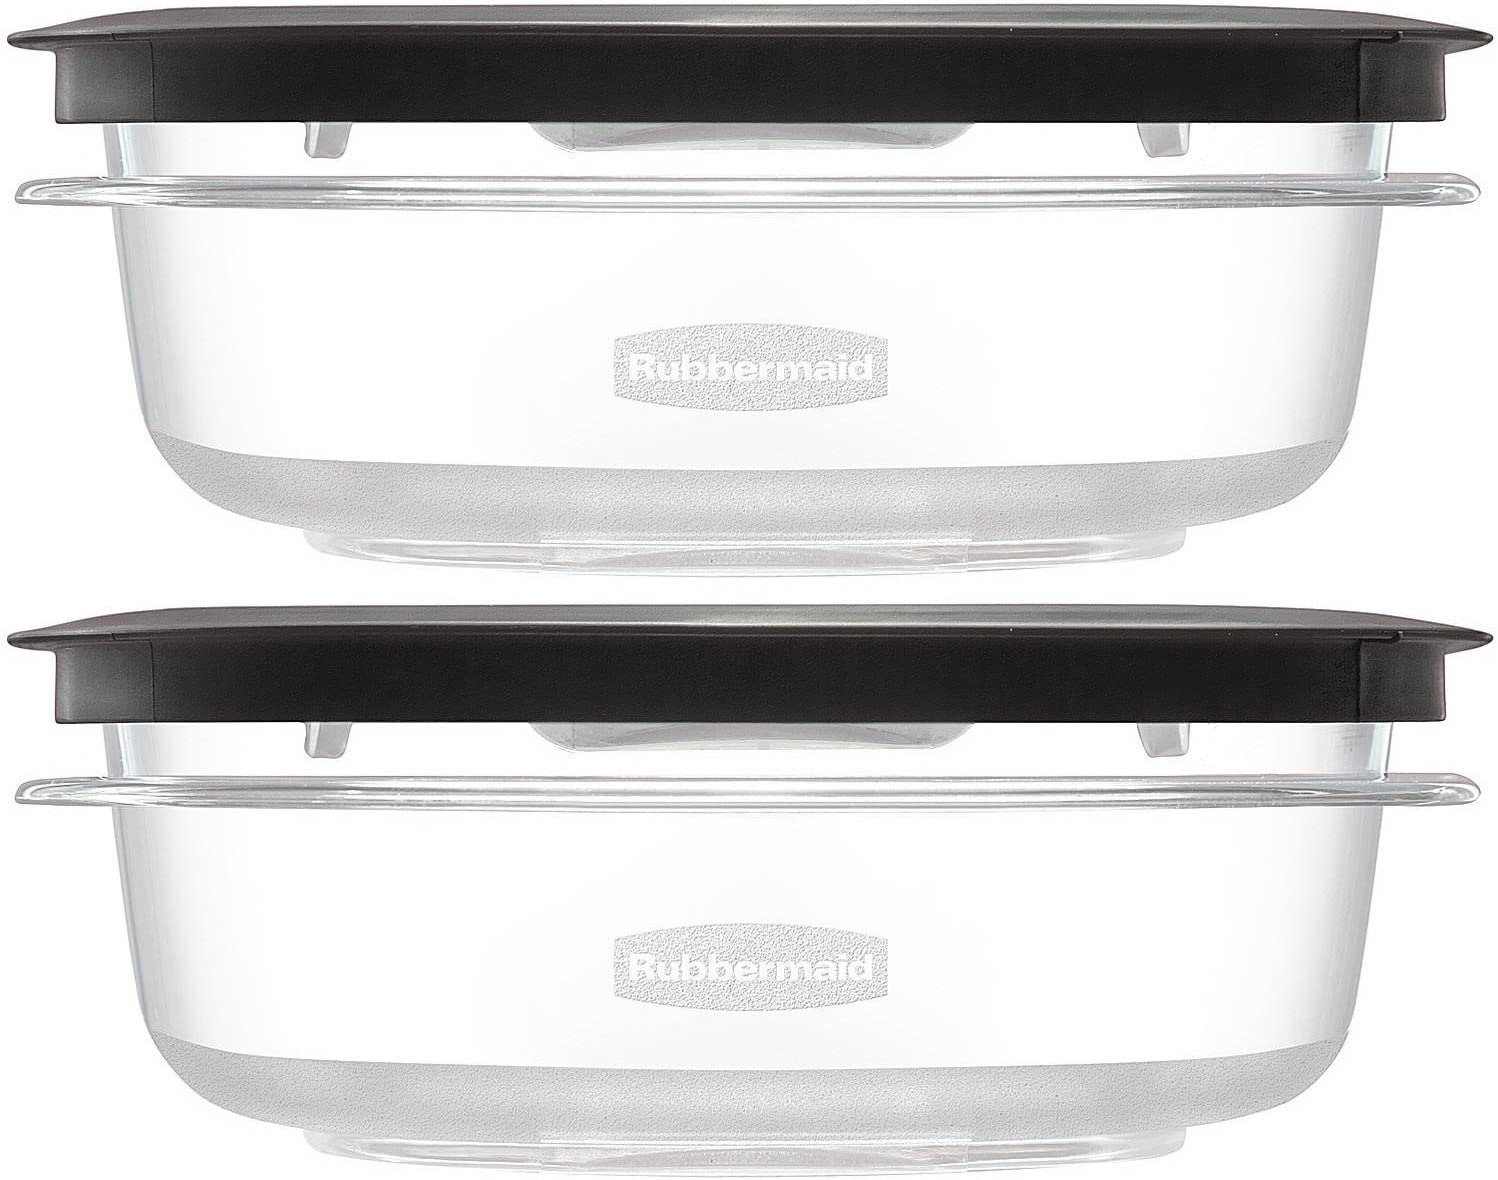 Rubbermaid Premier Food Storage Container, Grey, 3-Cups (Pack of 2)